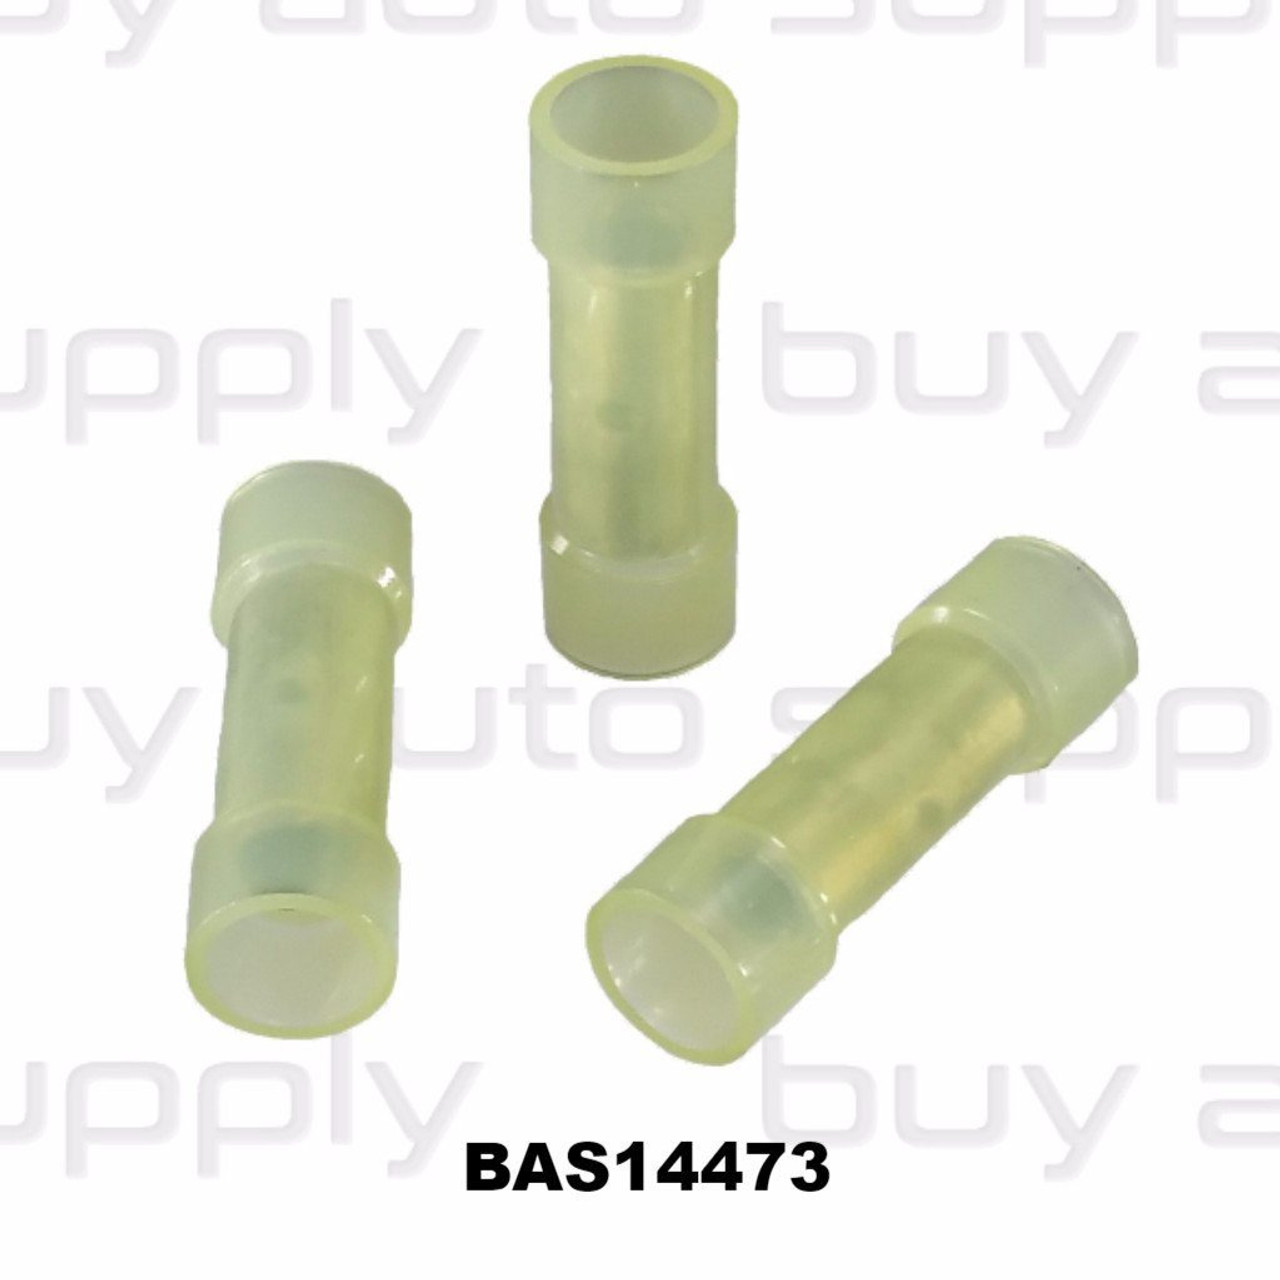 Butt Connectors - Yellow Nylon - Made in USA- BAS14473